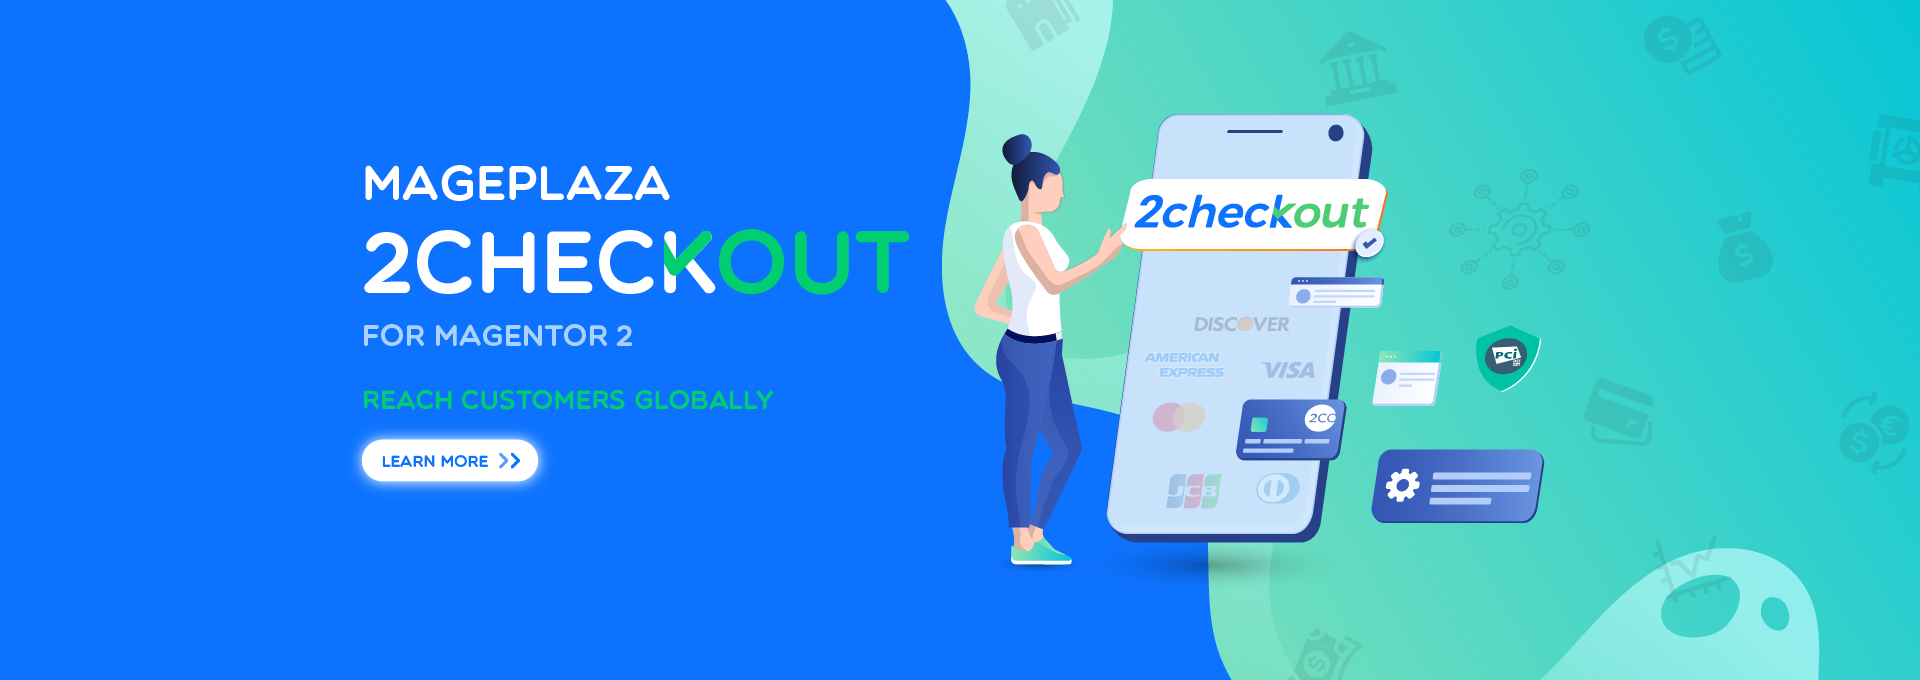 How to implement 2Checkout in Magento 2 payment?